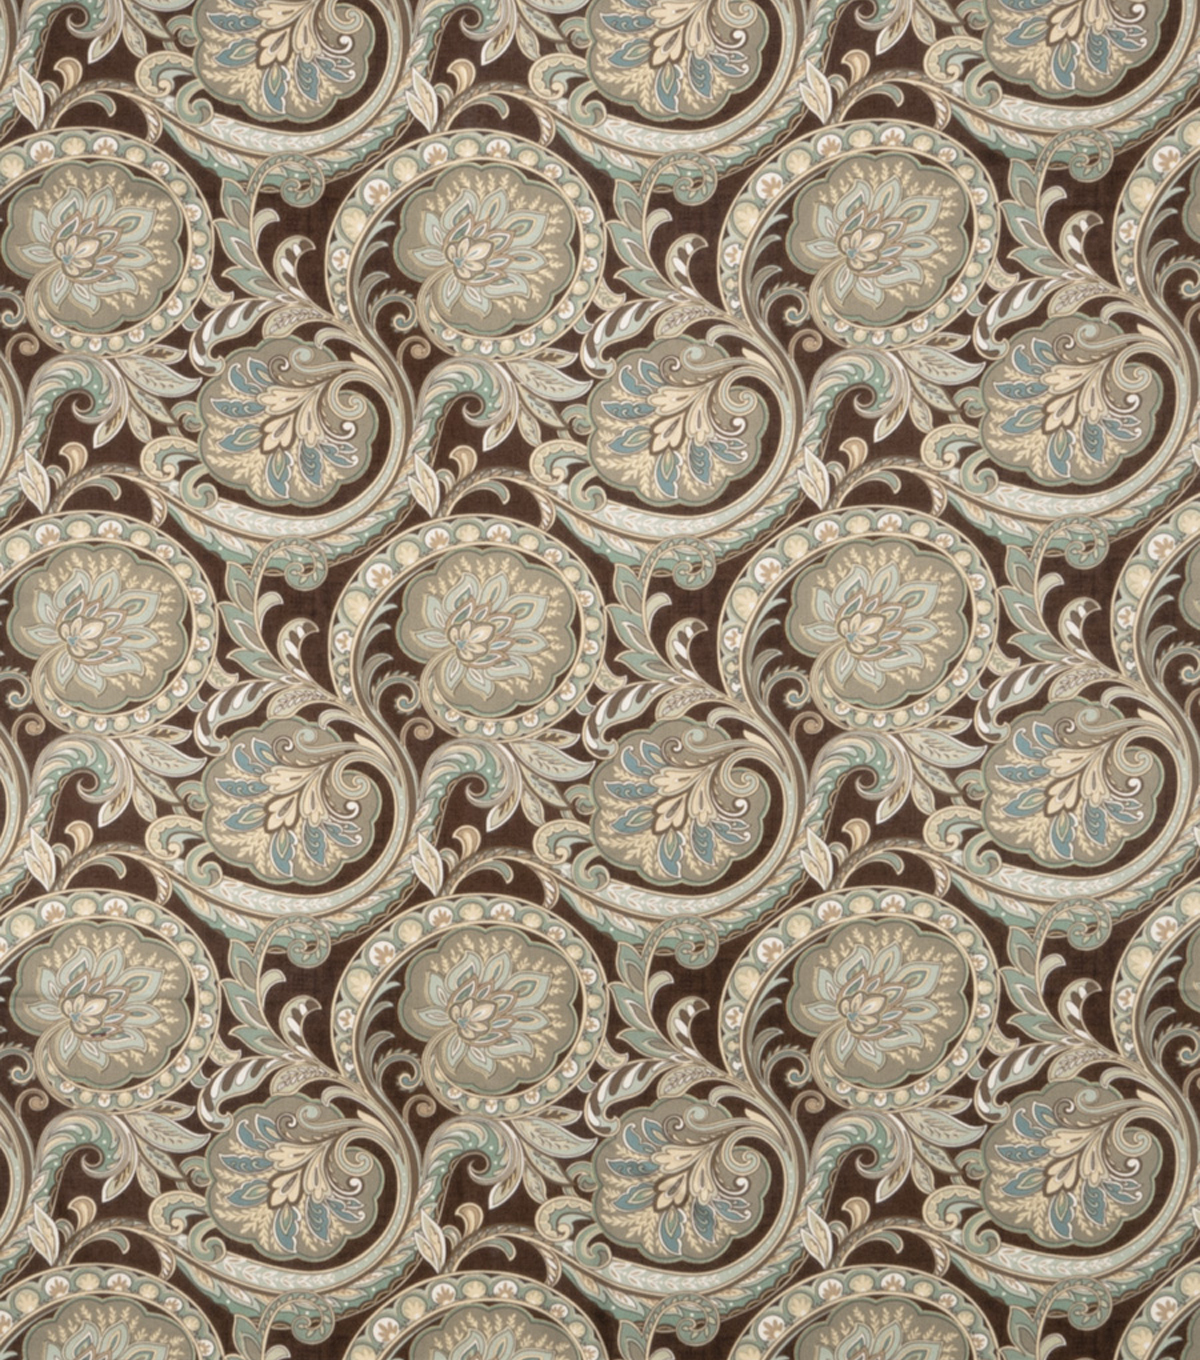 Home Decor 8\u0022x8\u0022 Fabric Swatch-SMC Designs Brownstone Mocha